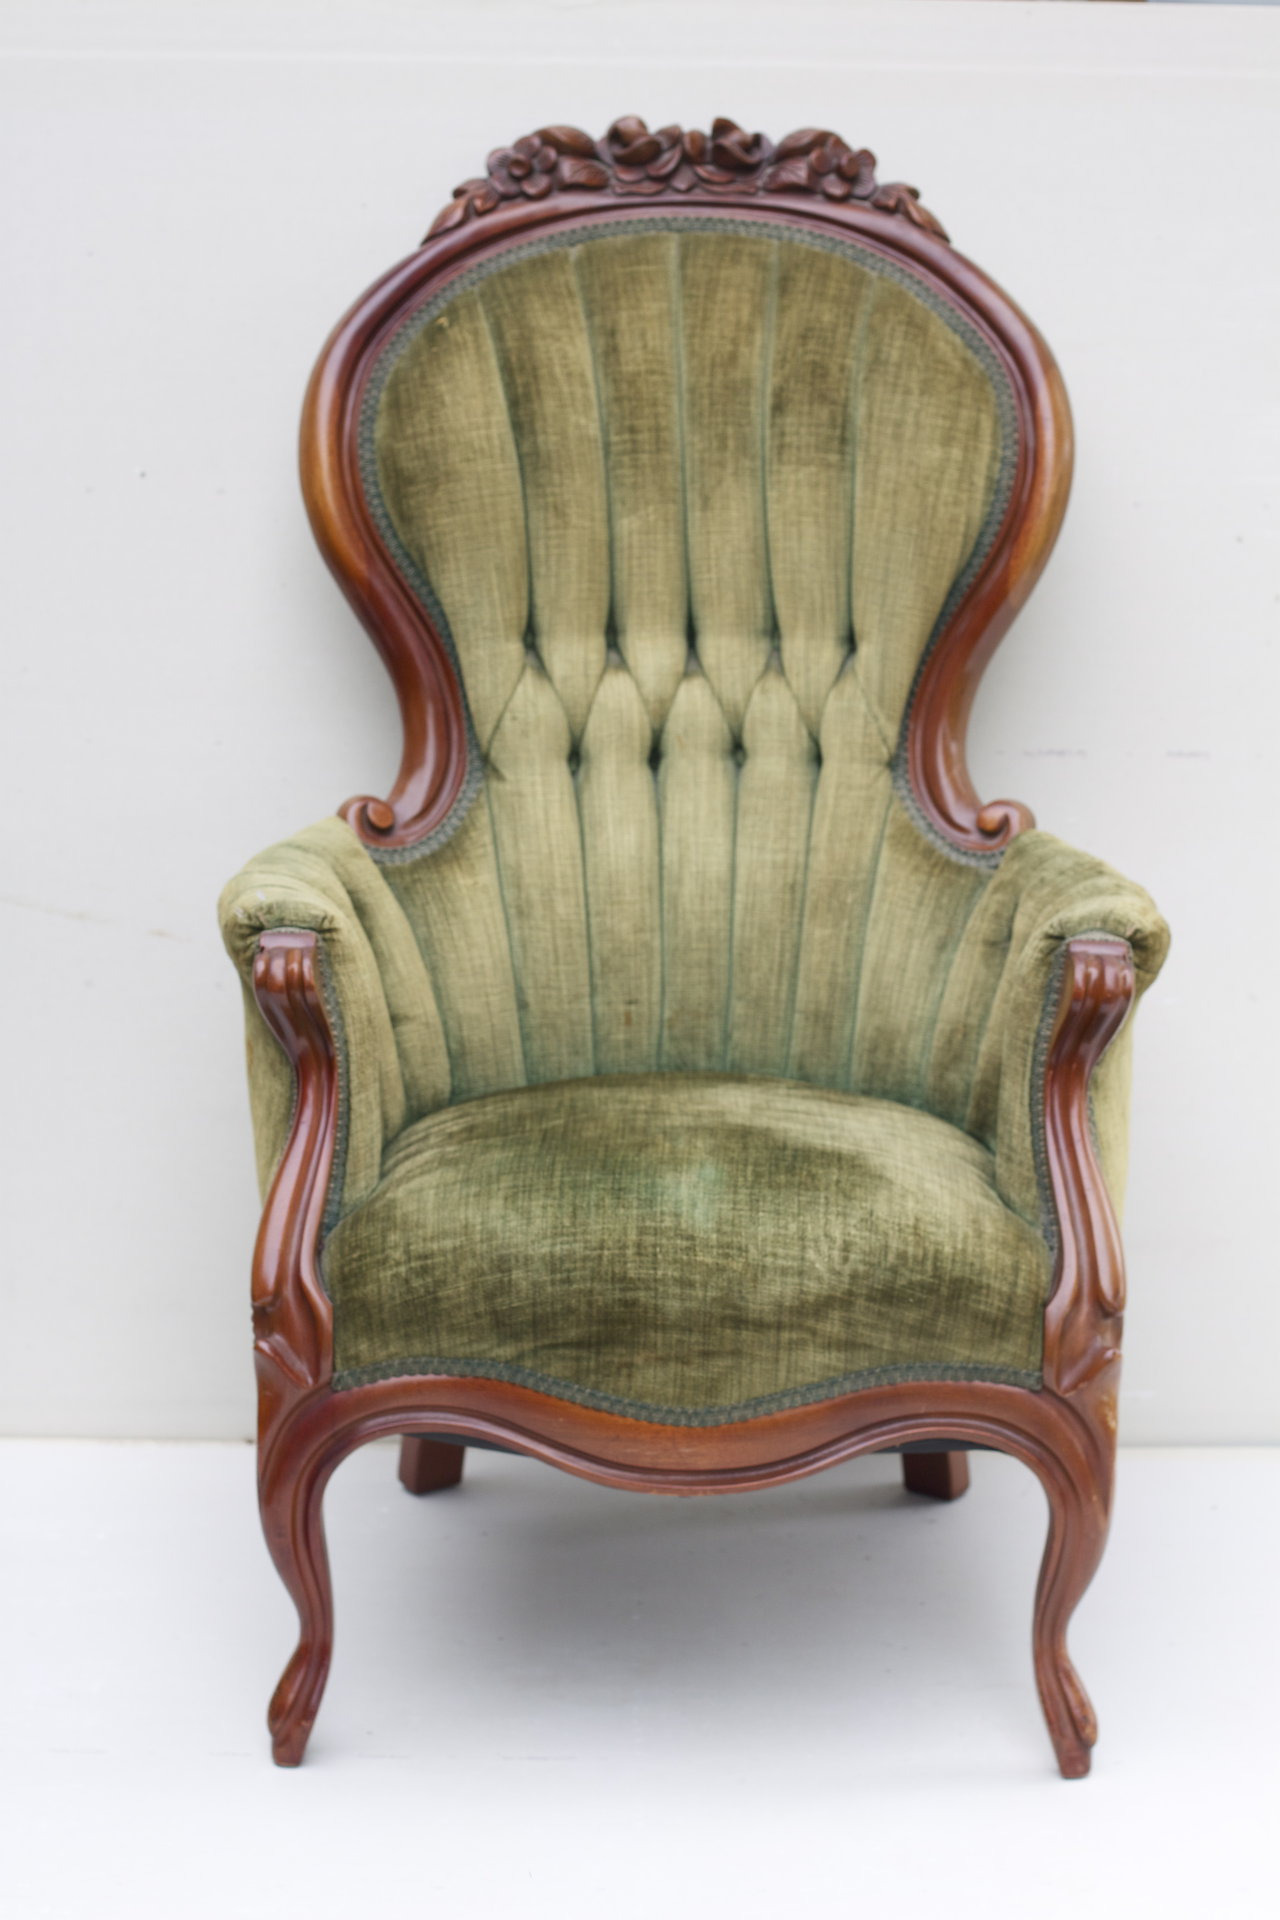 Antique Furniture for Sale On Ebay Fresh Incredible Vintage Upholstered Chair Antique Style Furniture